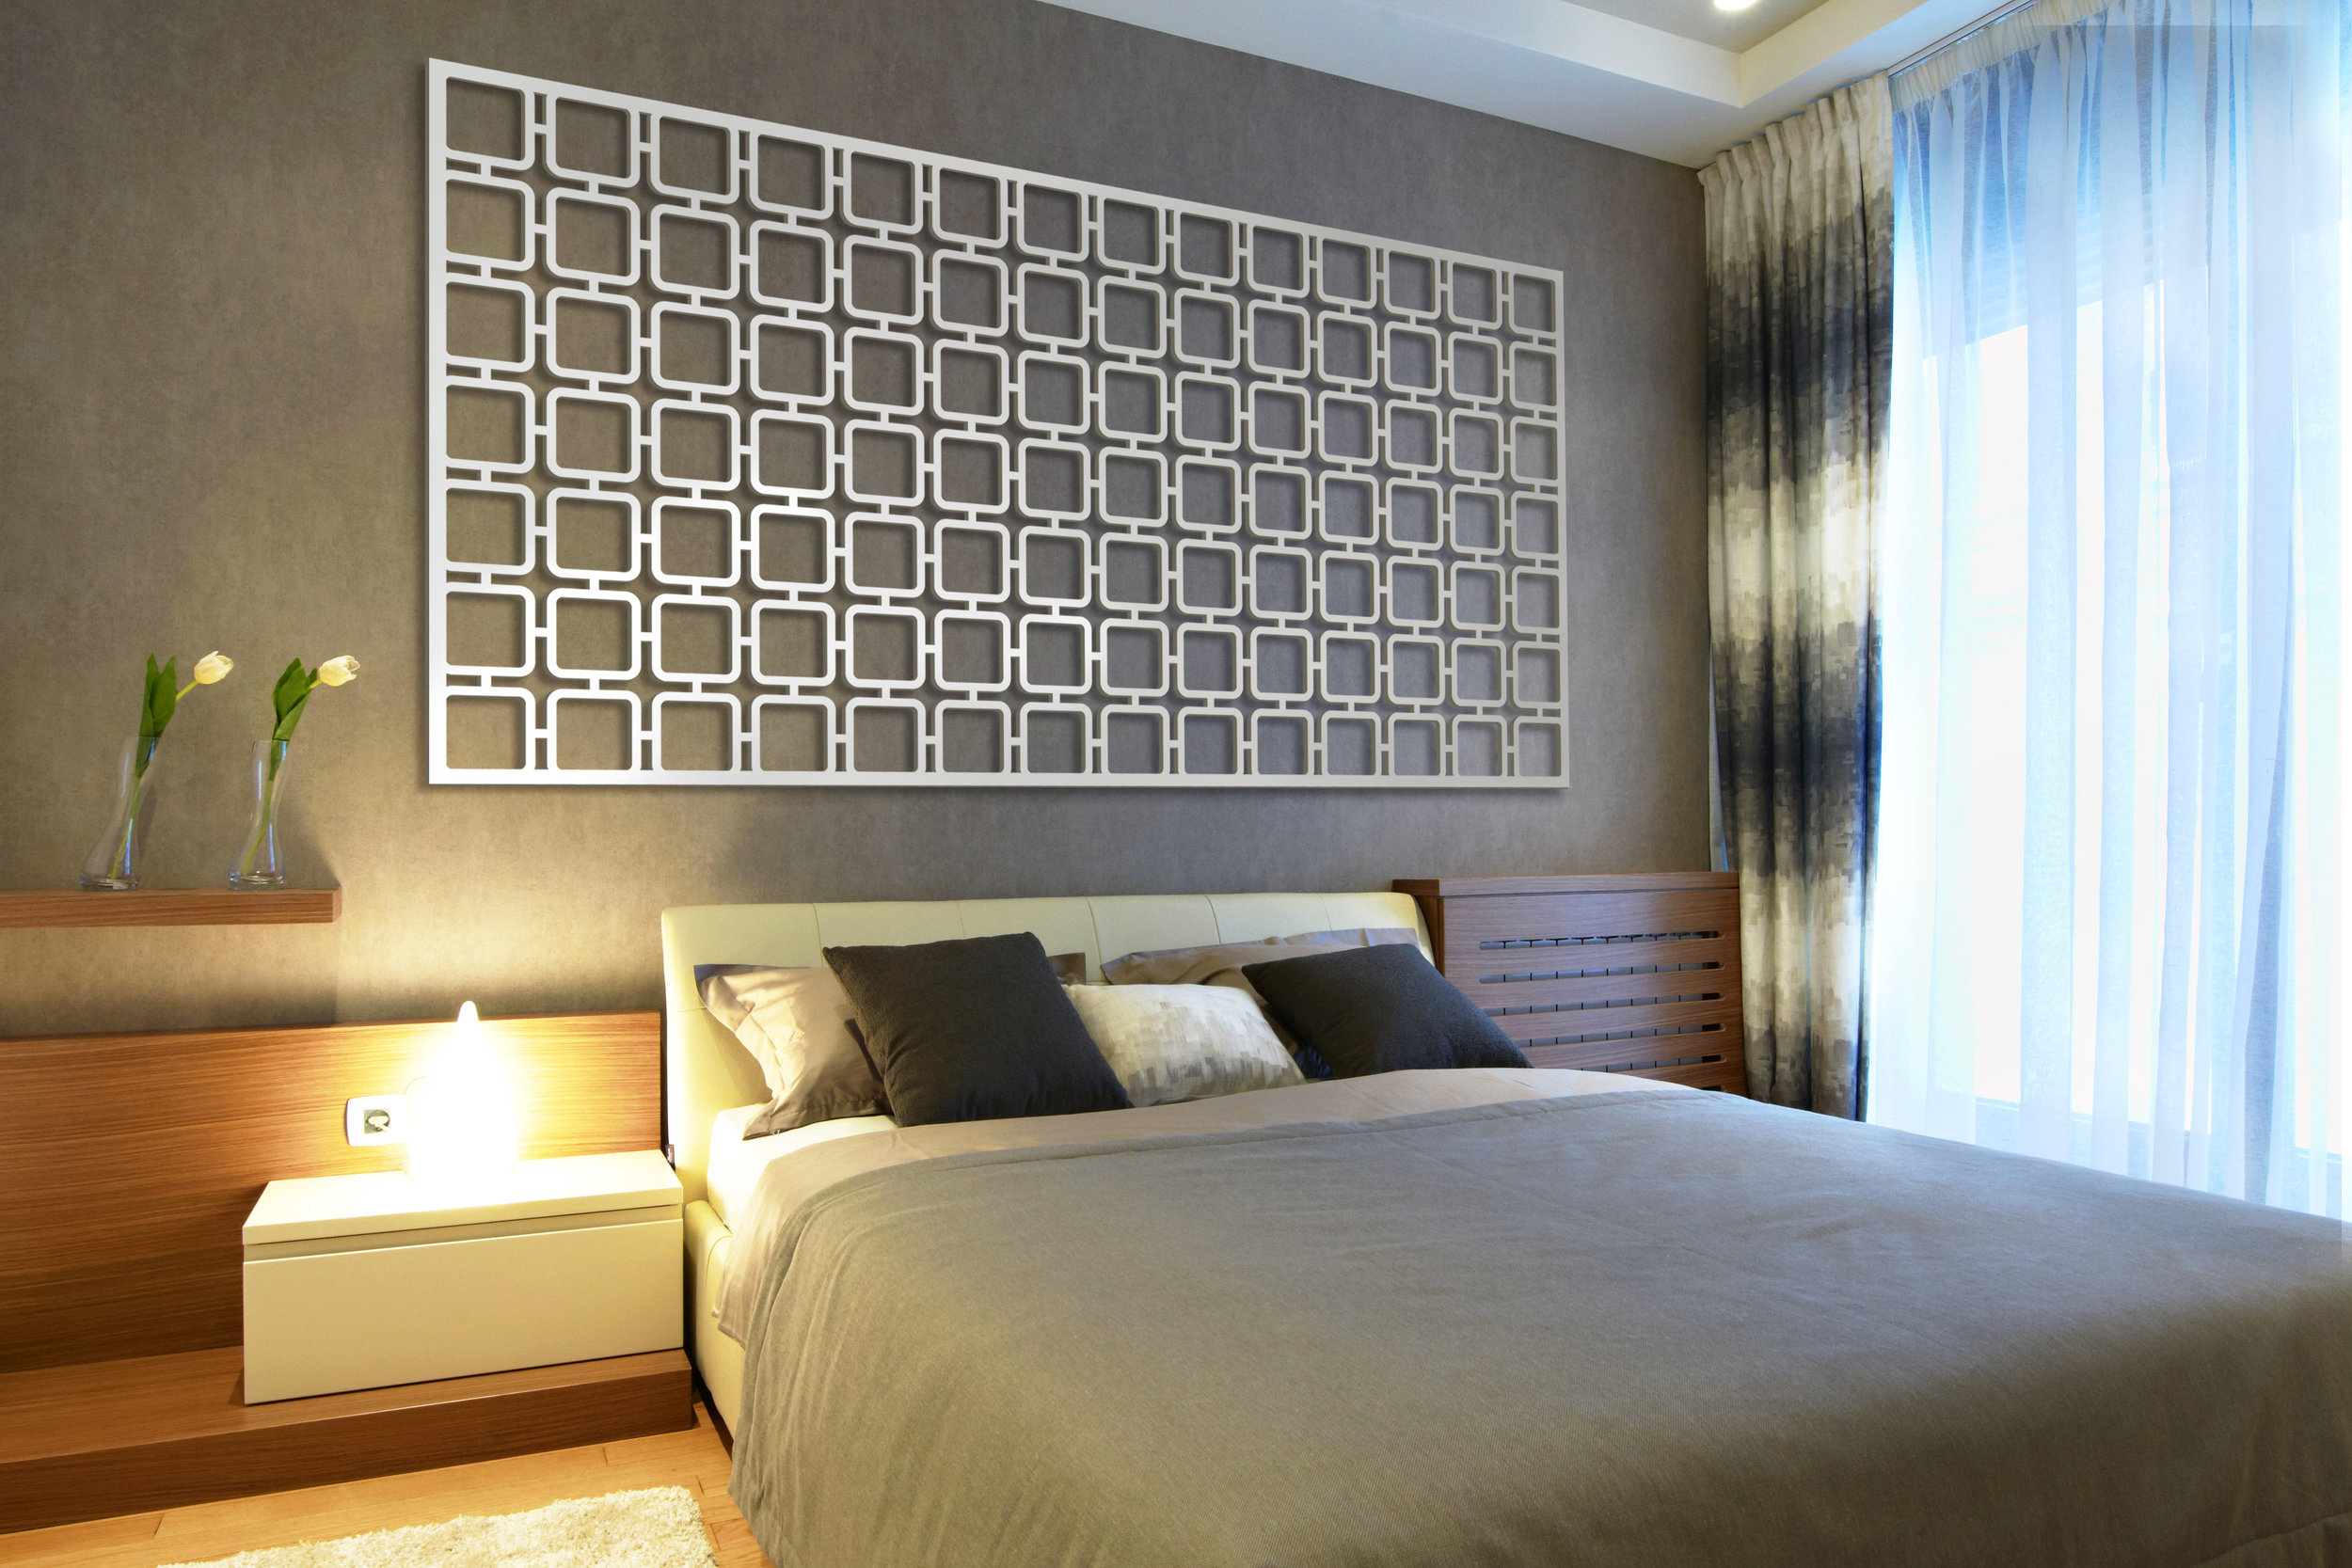 Installation Rendering C   Square Mezzo decorative hotel wall panel - painted